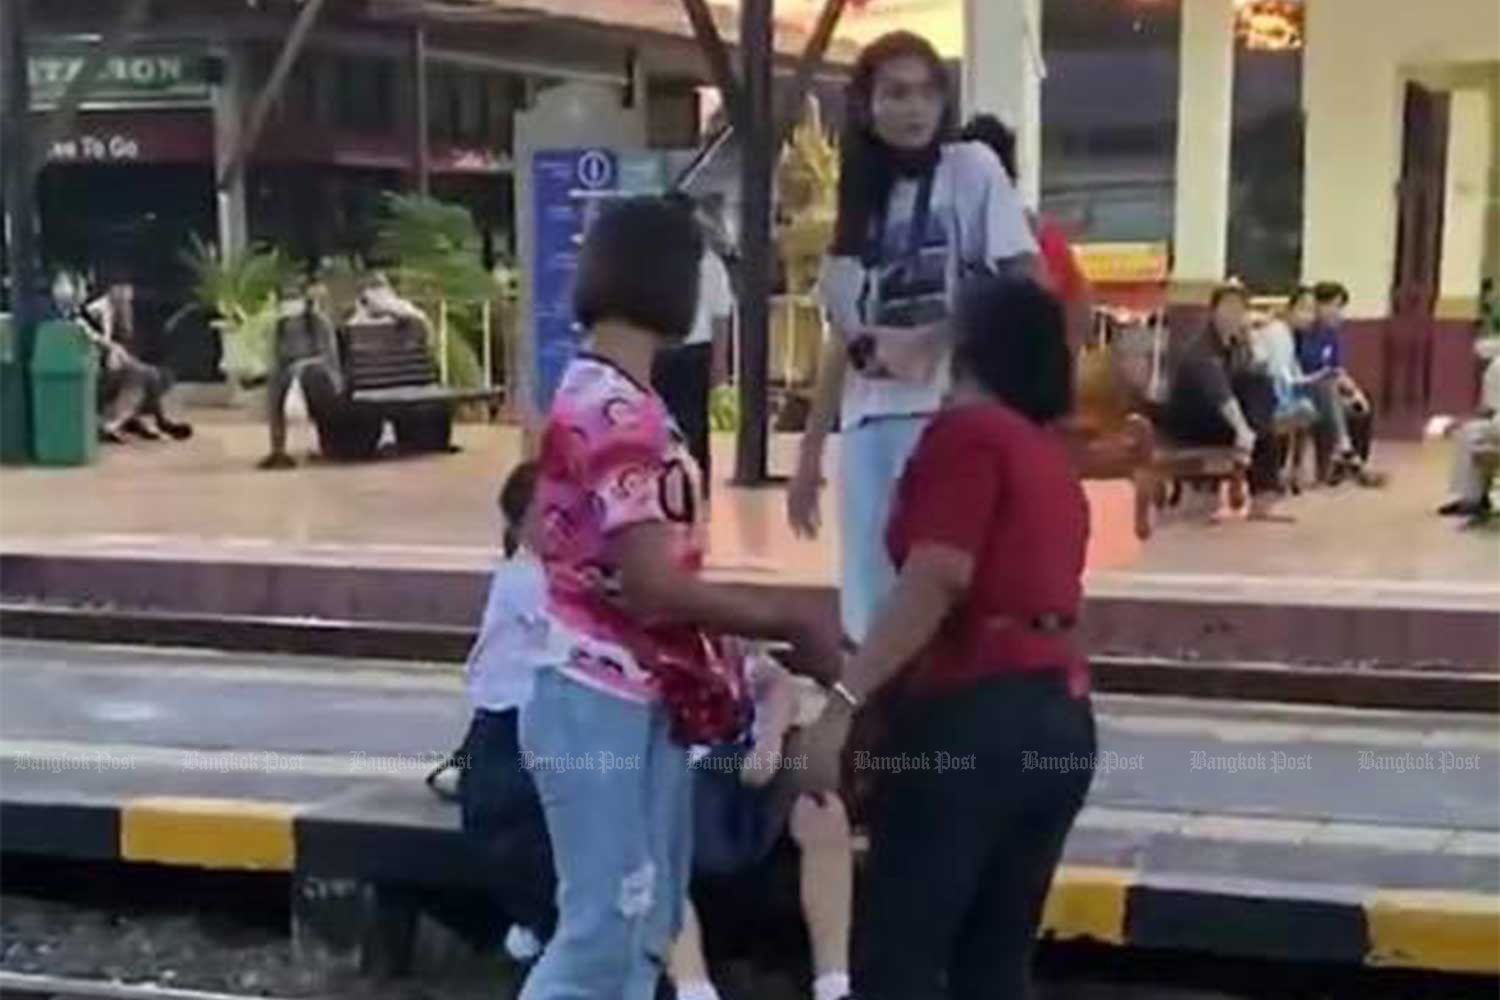 the 45-year-old vendor, wearing red, slaps the face of the high school girl who did not stand up during the national anthem at Ayutthaya railway station on Tuesday. (Photo from เพื่ออยุธยา เพื่อประชาธิปไตย For Ayutthaya For Democracy Facebook page)